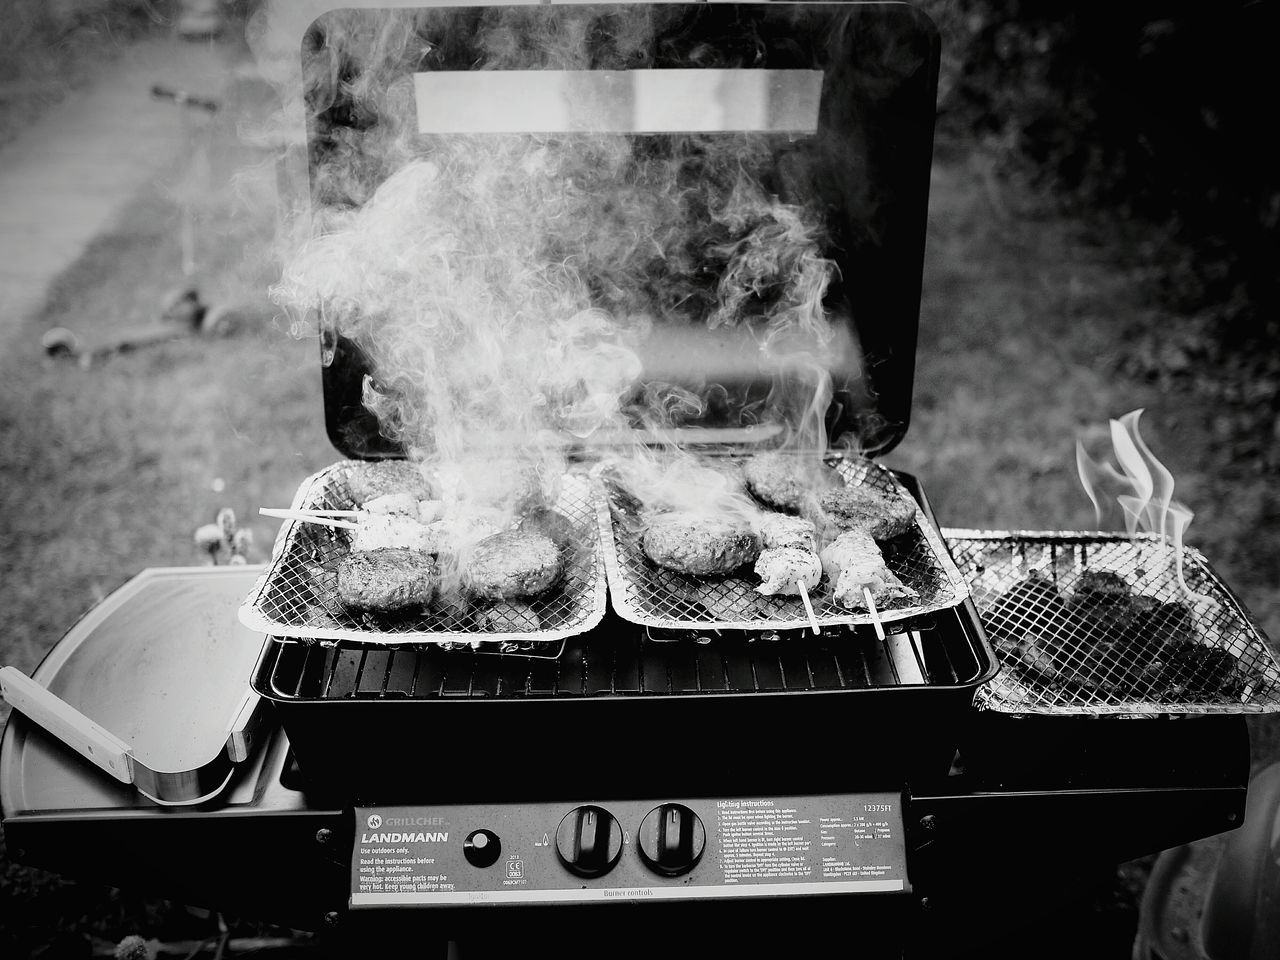 smoke - physical structure, food and drink, barbecue grill, preparation, food, heat - temperature, barbecue, burning, grilled, freshness, preparing food, indoors, meat, healthy eating, no people, sausage, close-up, flame, steam, day